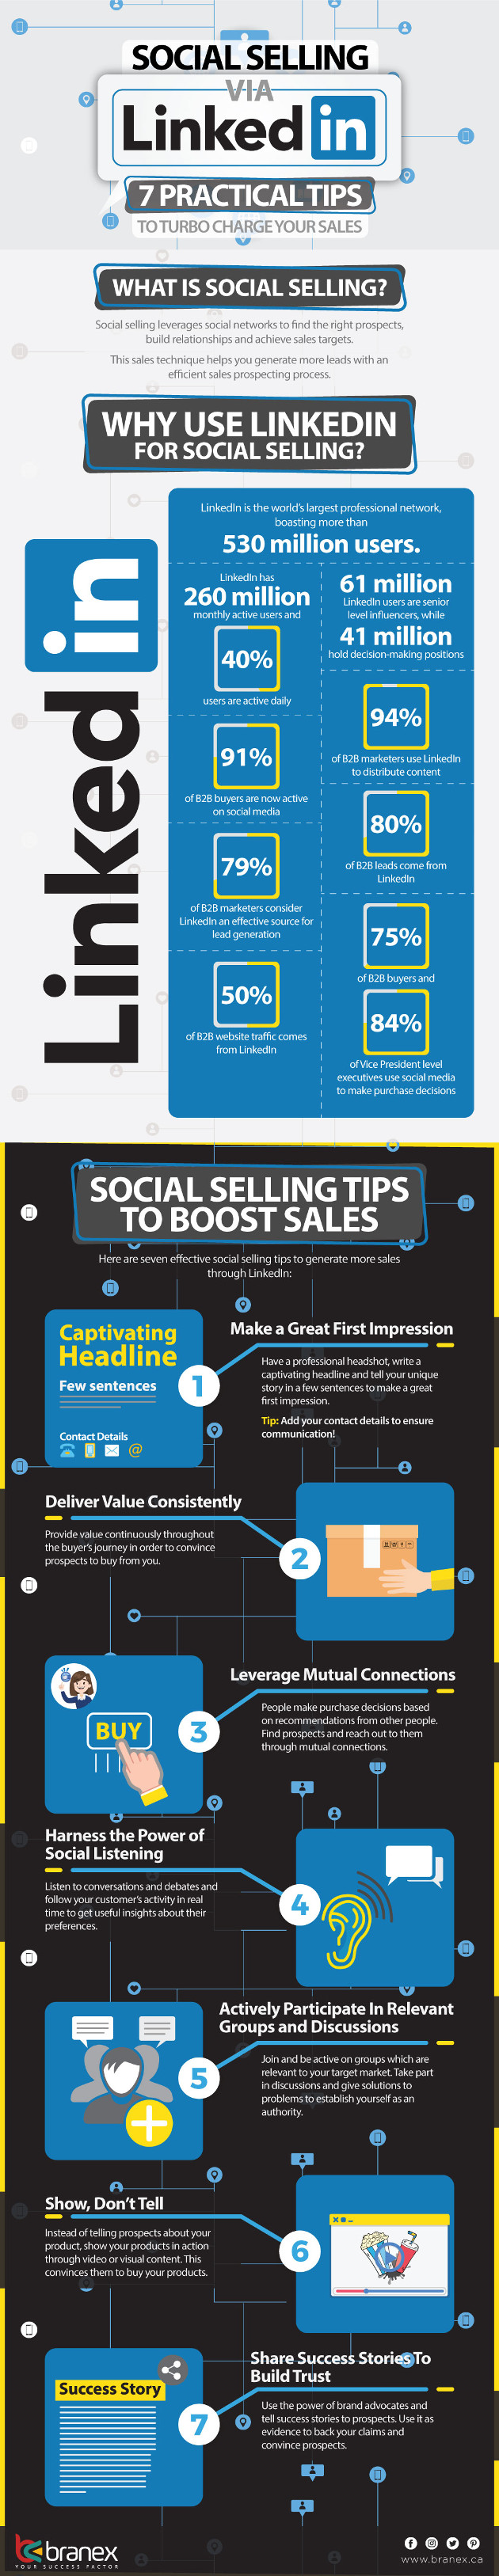 https://i.marketingprofs.com/assets/images/daily-chirp/181004-infographic-linkedin-tips-social-selling-index.jpg